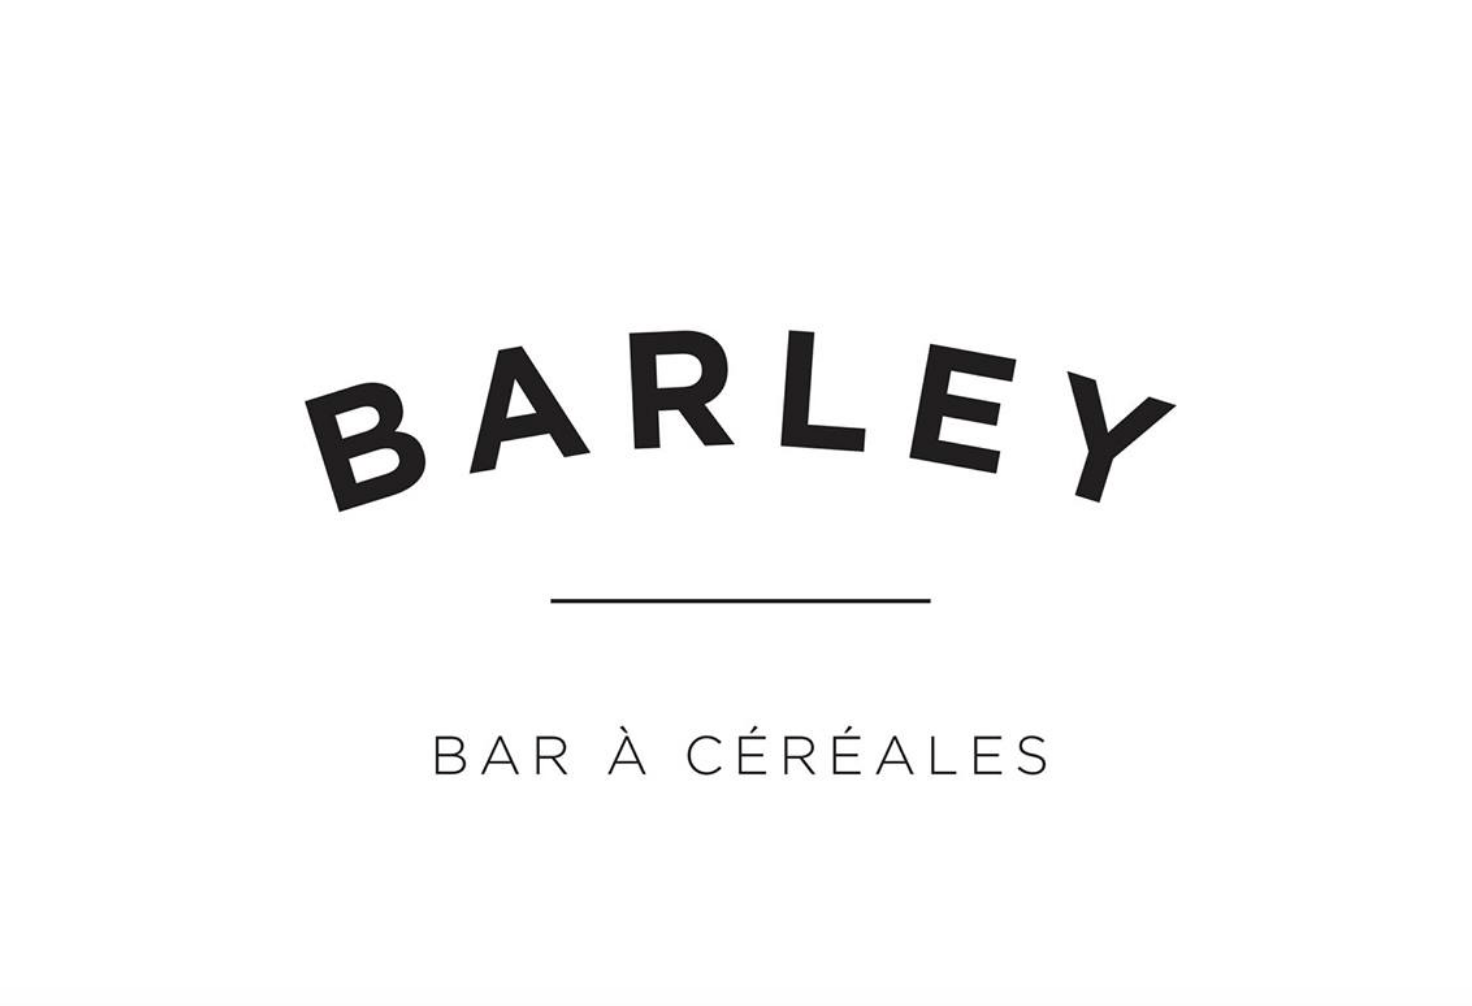 a cereal cafe is opening in montreal | daily hive montreal